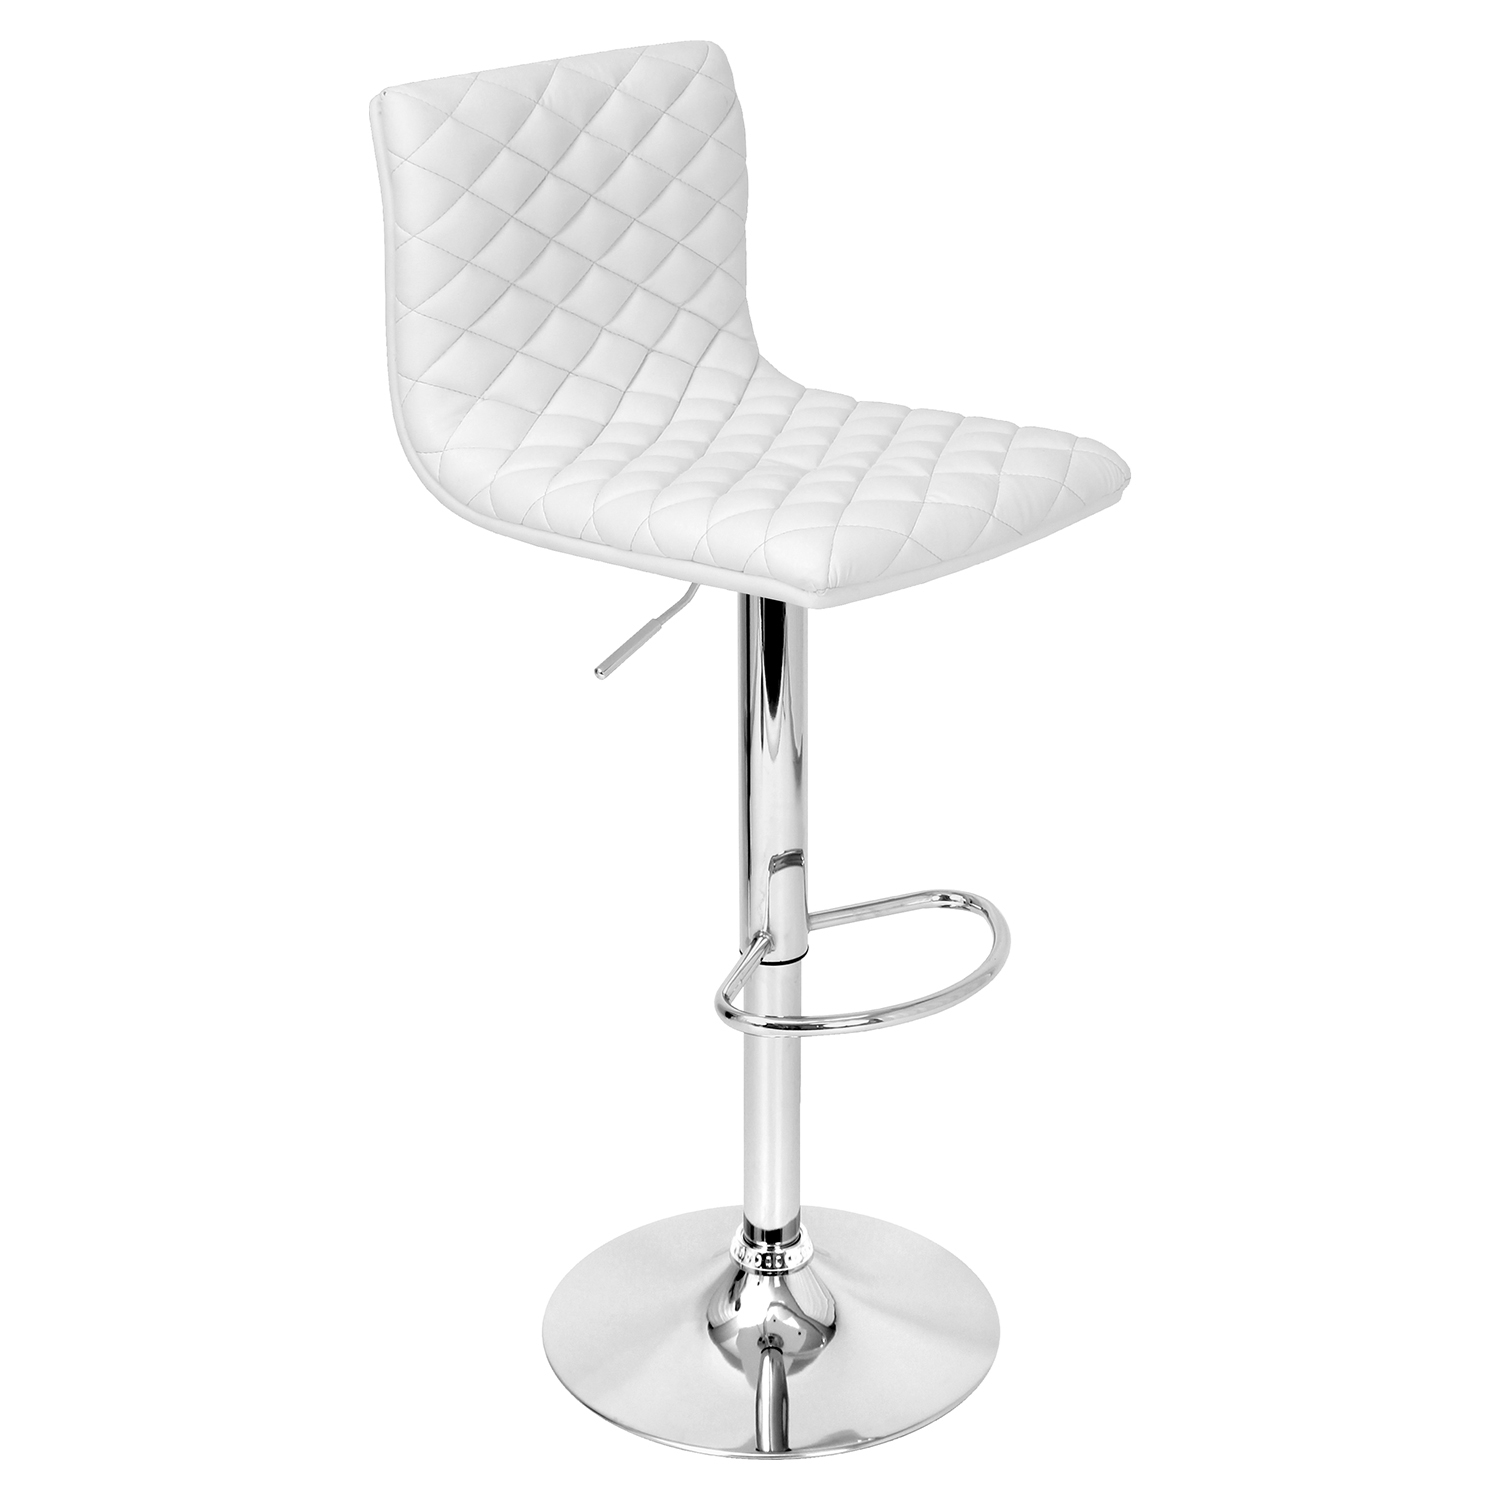 Caviar Height Adjustable Barstool - Swivel, White